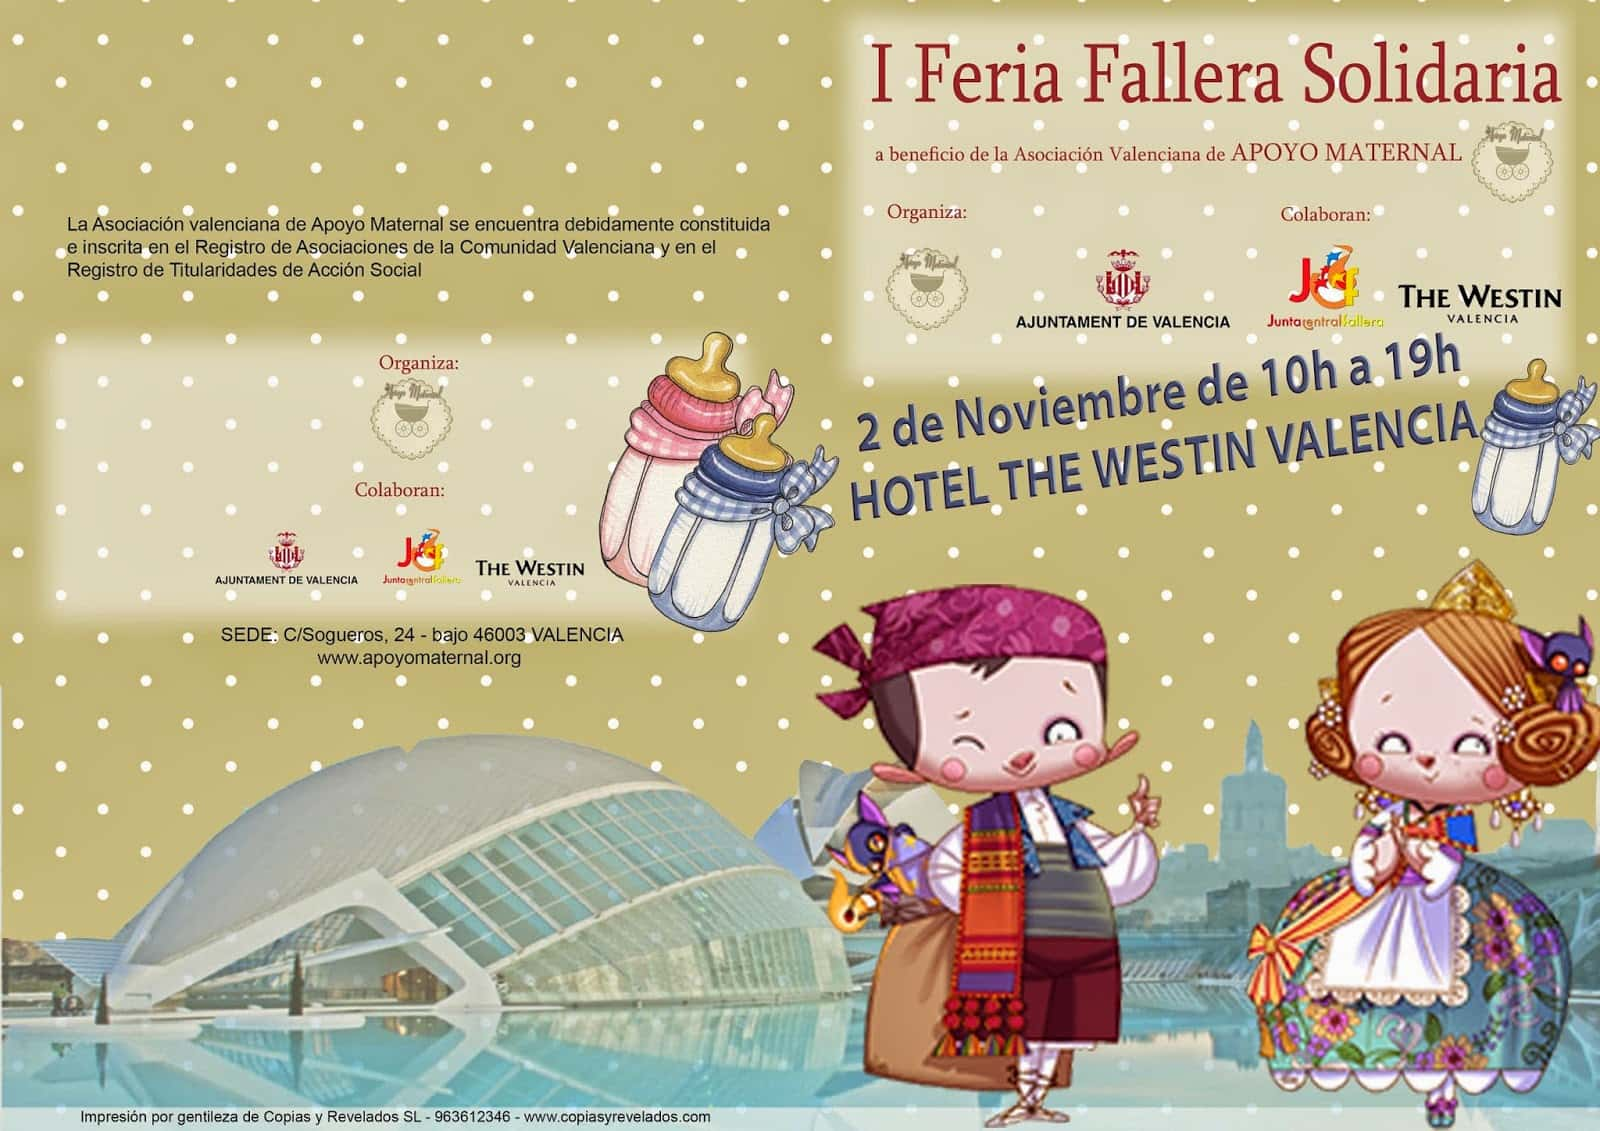 The Valencian Association of Maternal support organizes the Fallera solidarity fair I 1